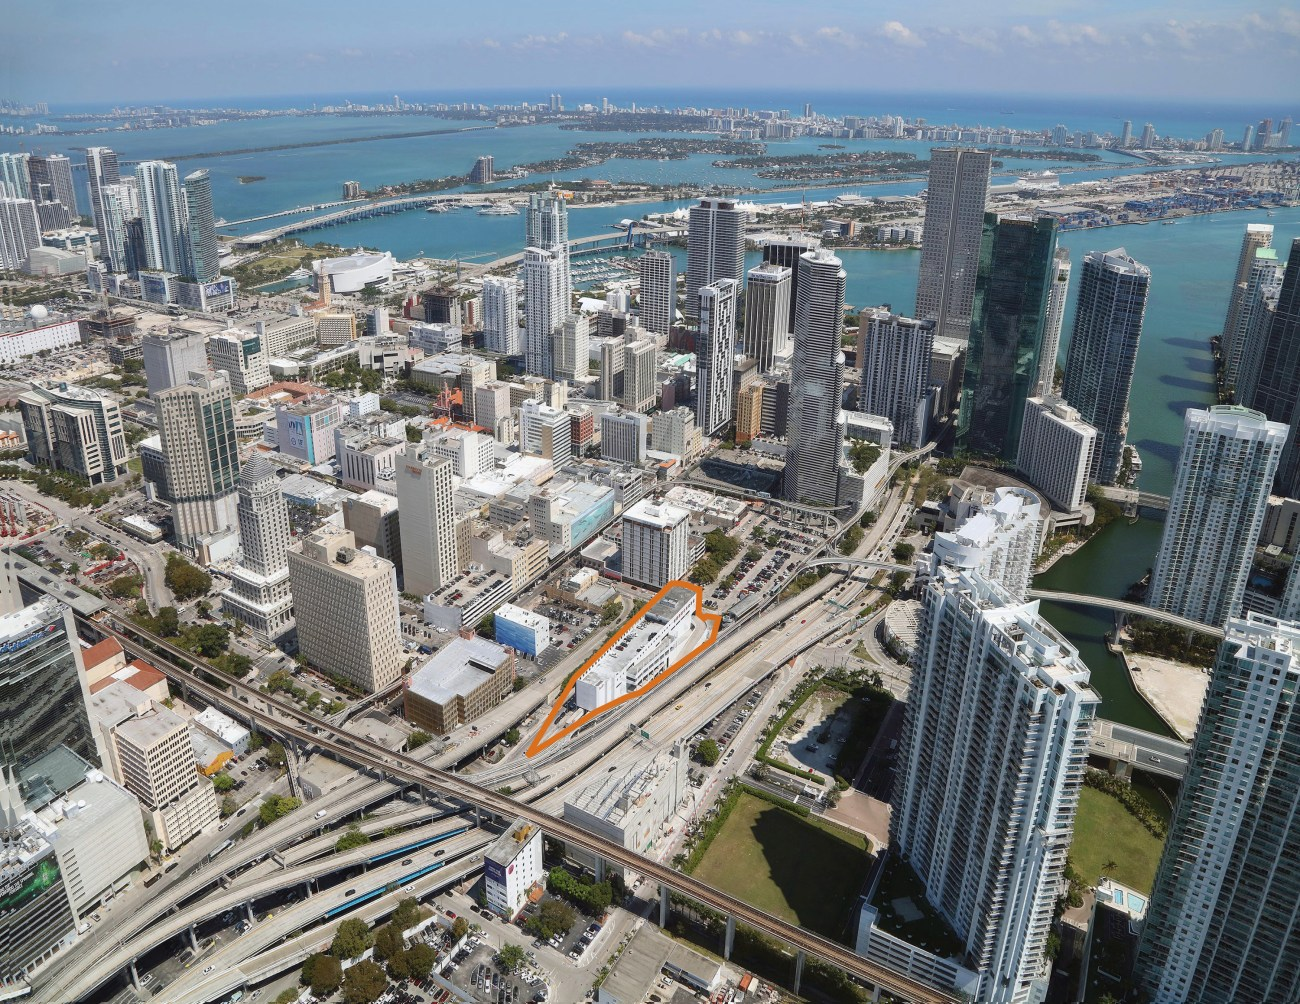 Cushman & Wakefield Negotiates $37.25M Sale of FedEx Distribution Facility and Development Site in Downtown Miami